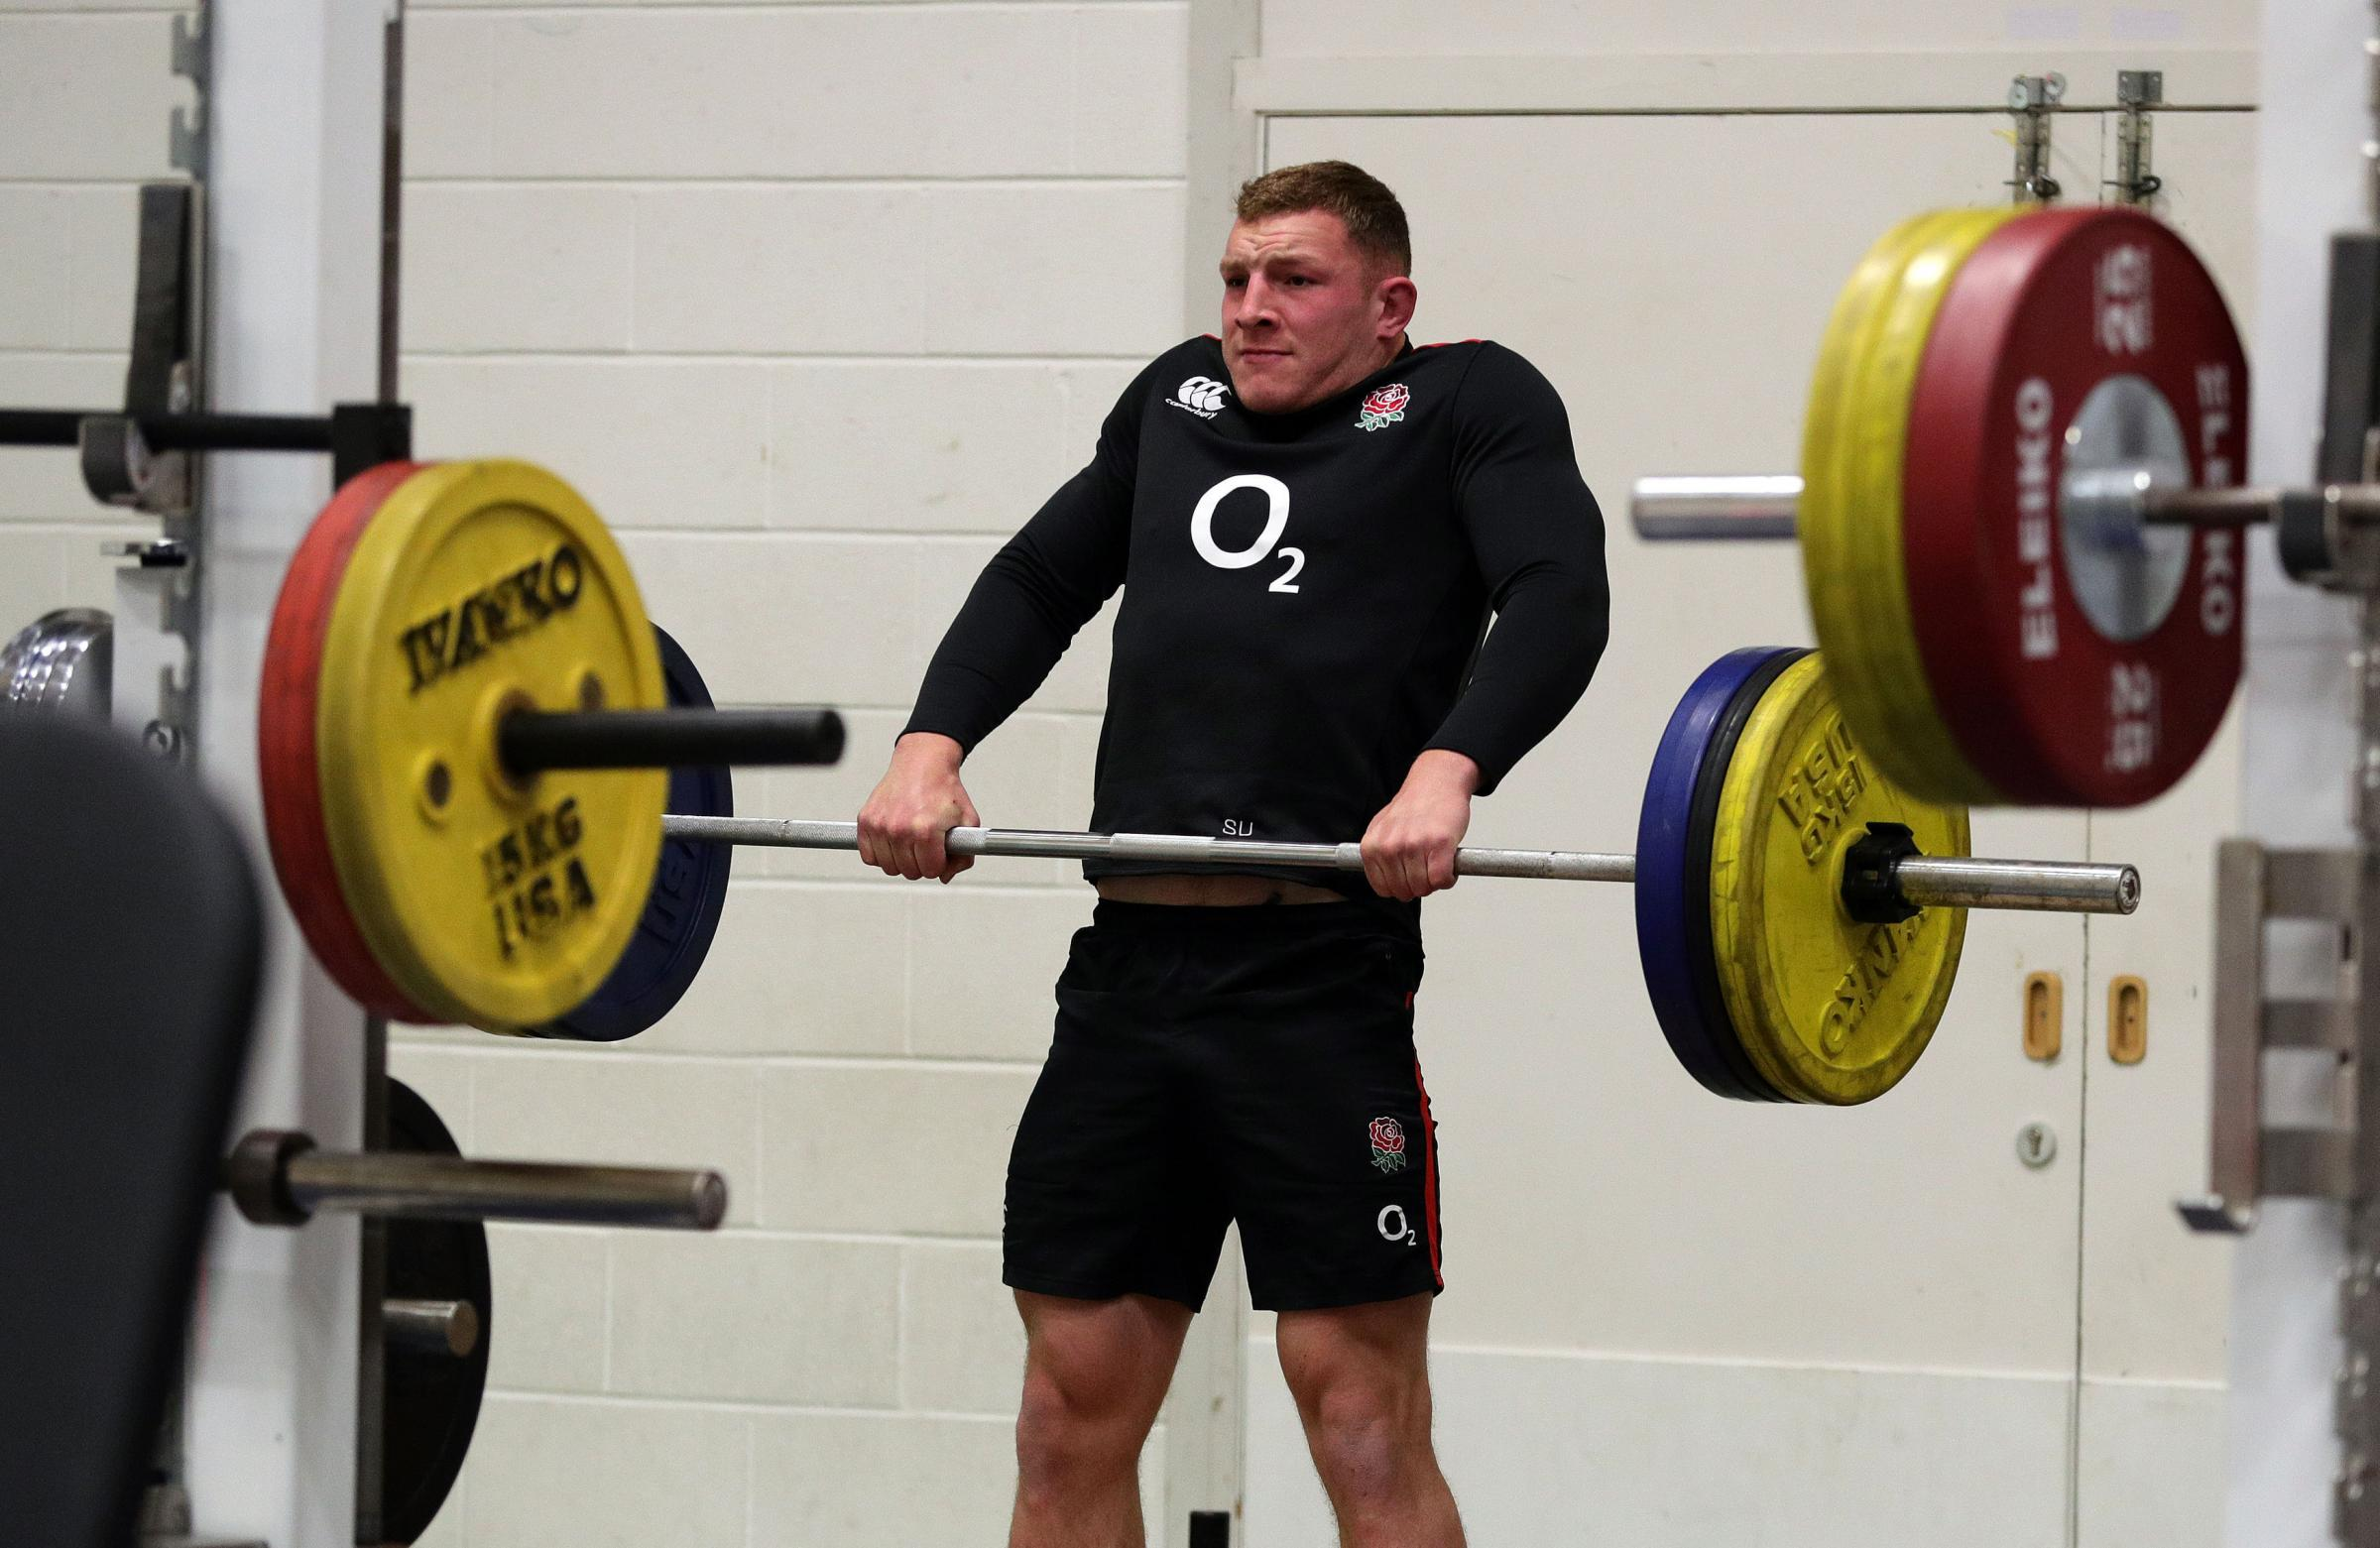 England's Sam Underhill during the training session at St Edward's School, Oxford last week